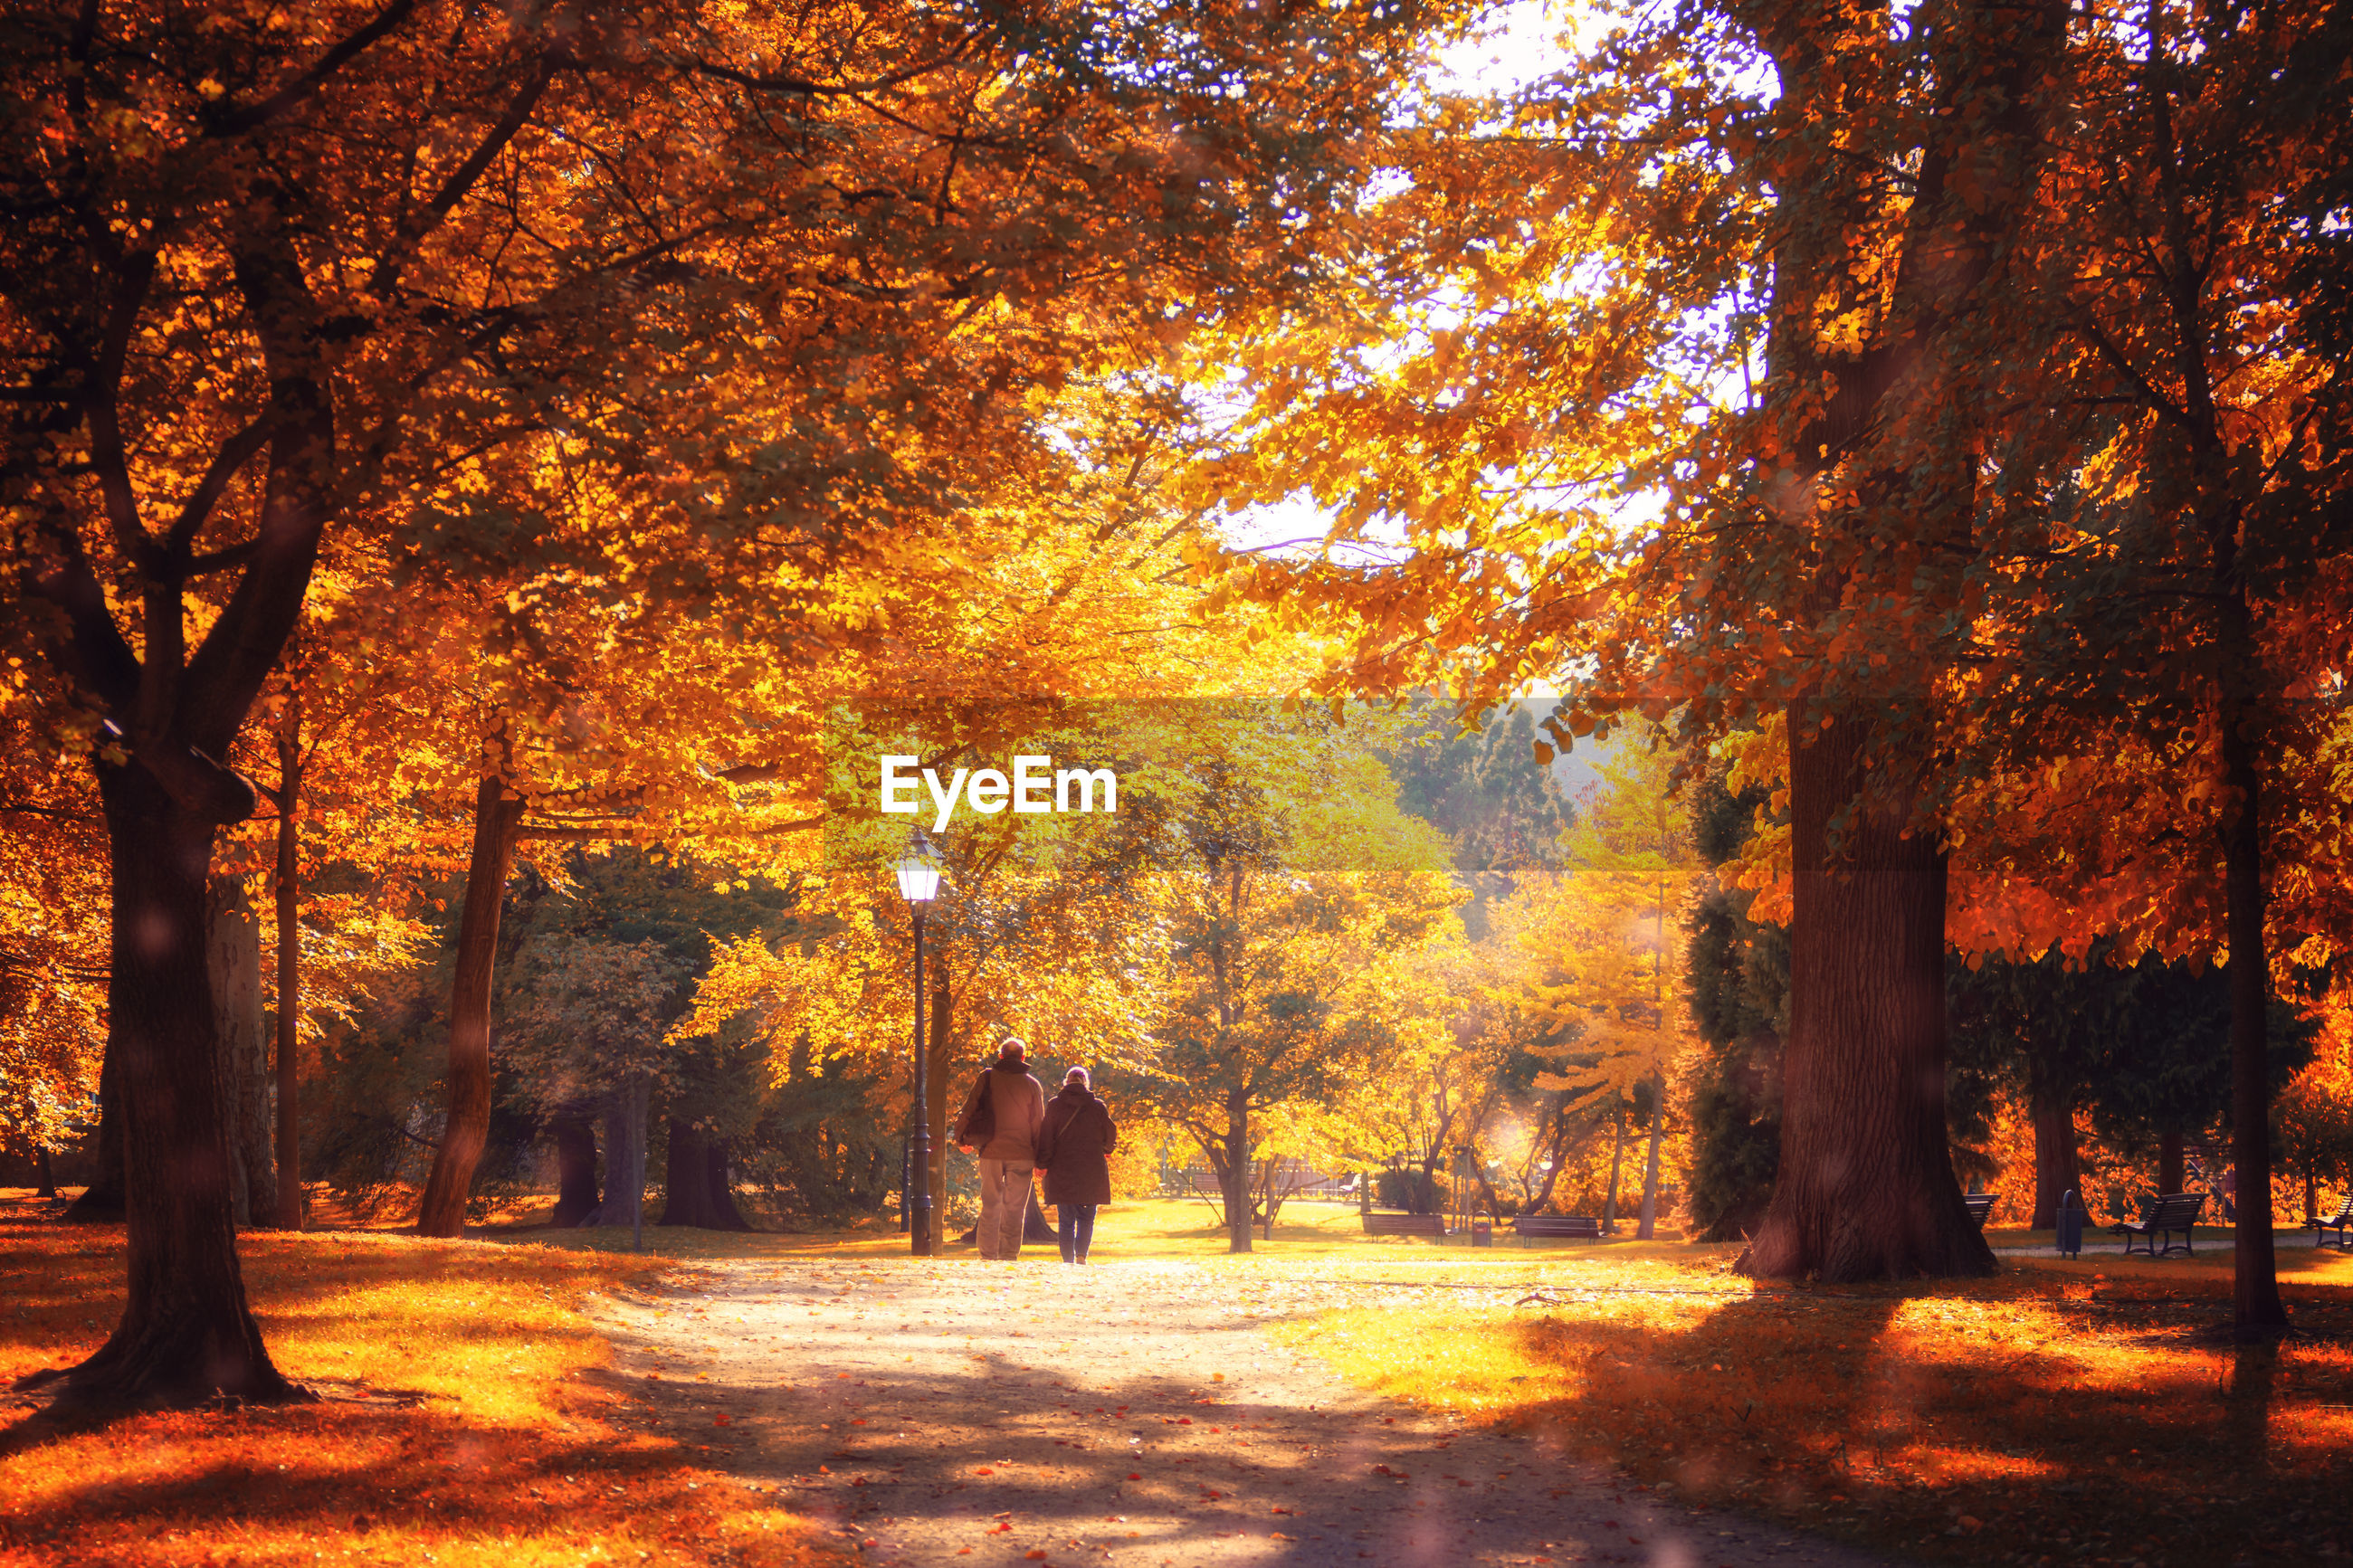 REAR VIEW OF PEOPLE WALKING IN AUTUMN TREES IN PARK